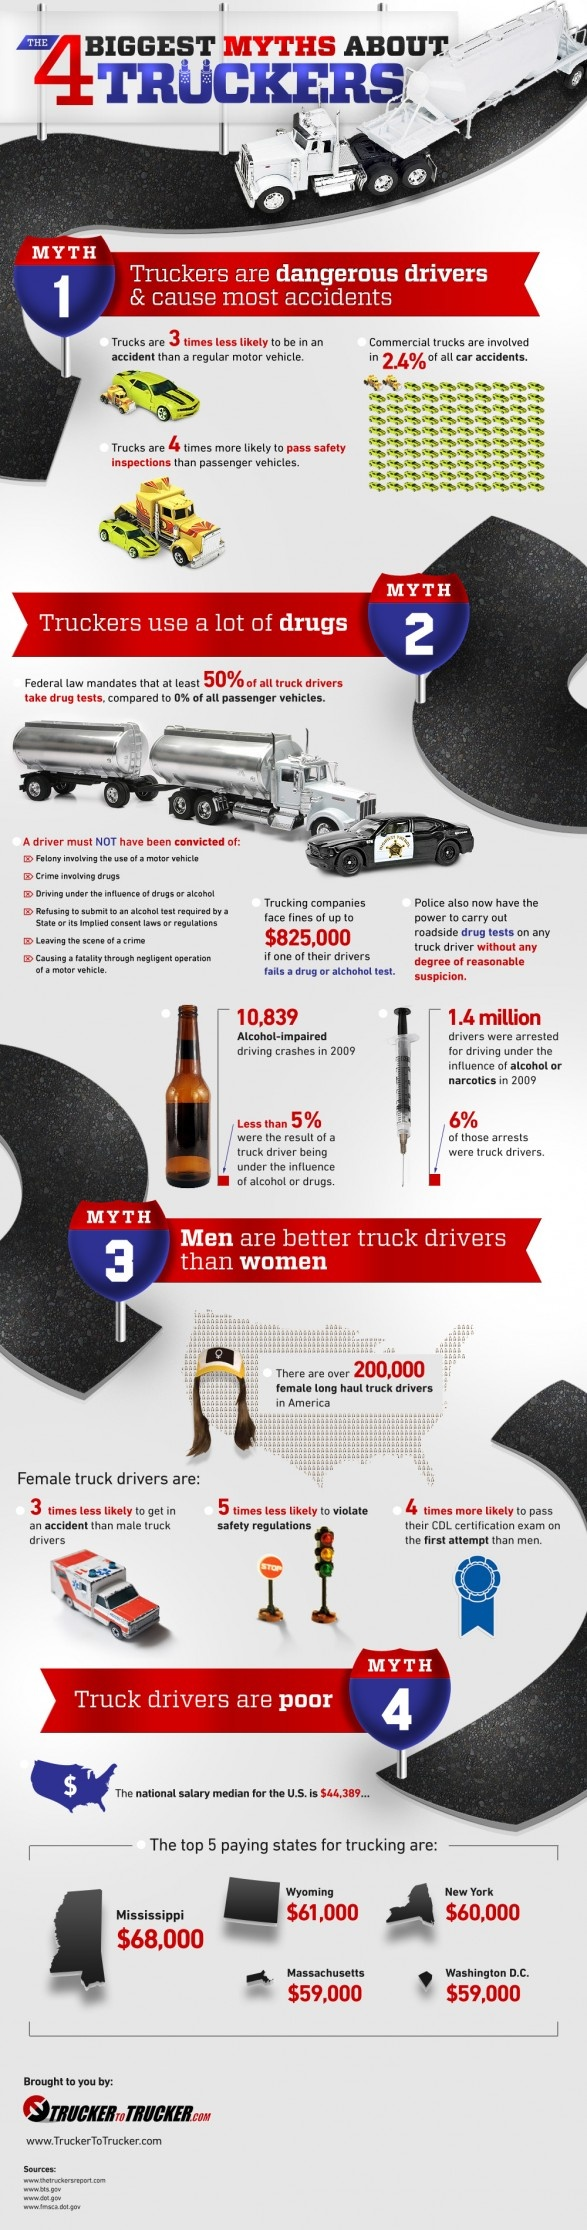 Myths about truck drivers